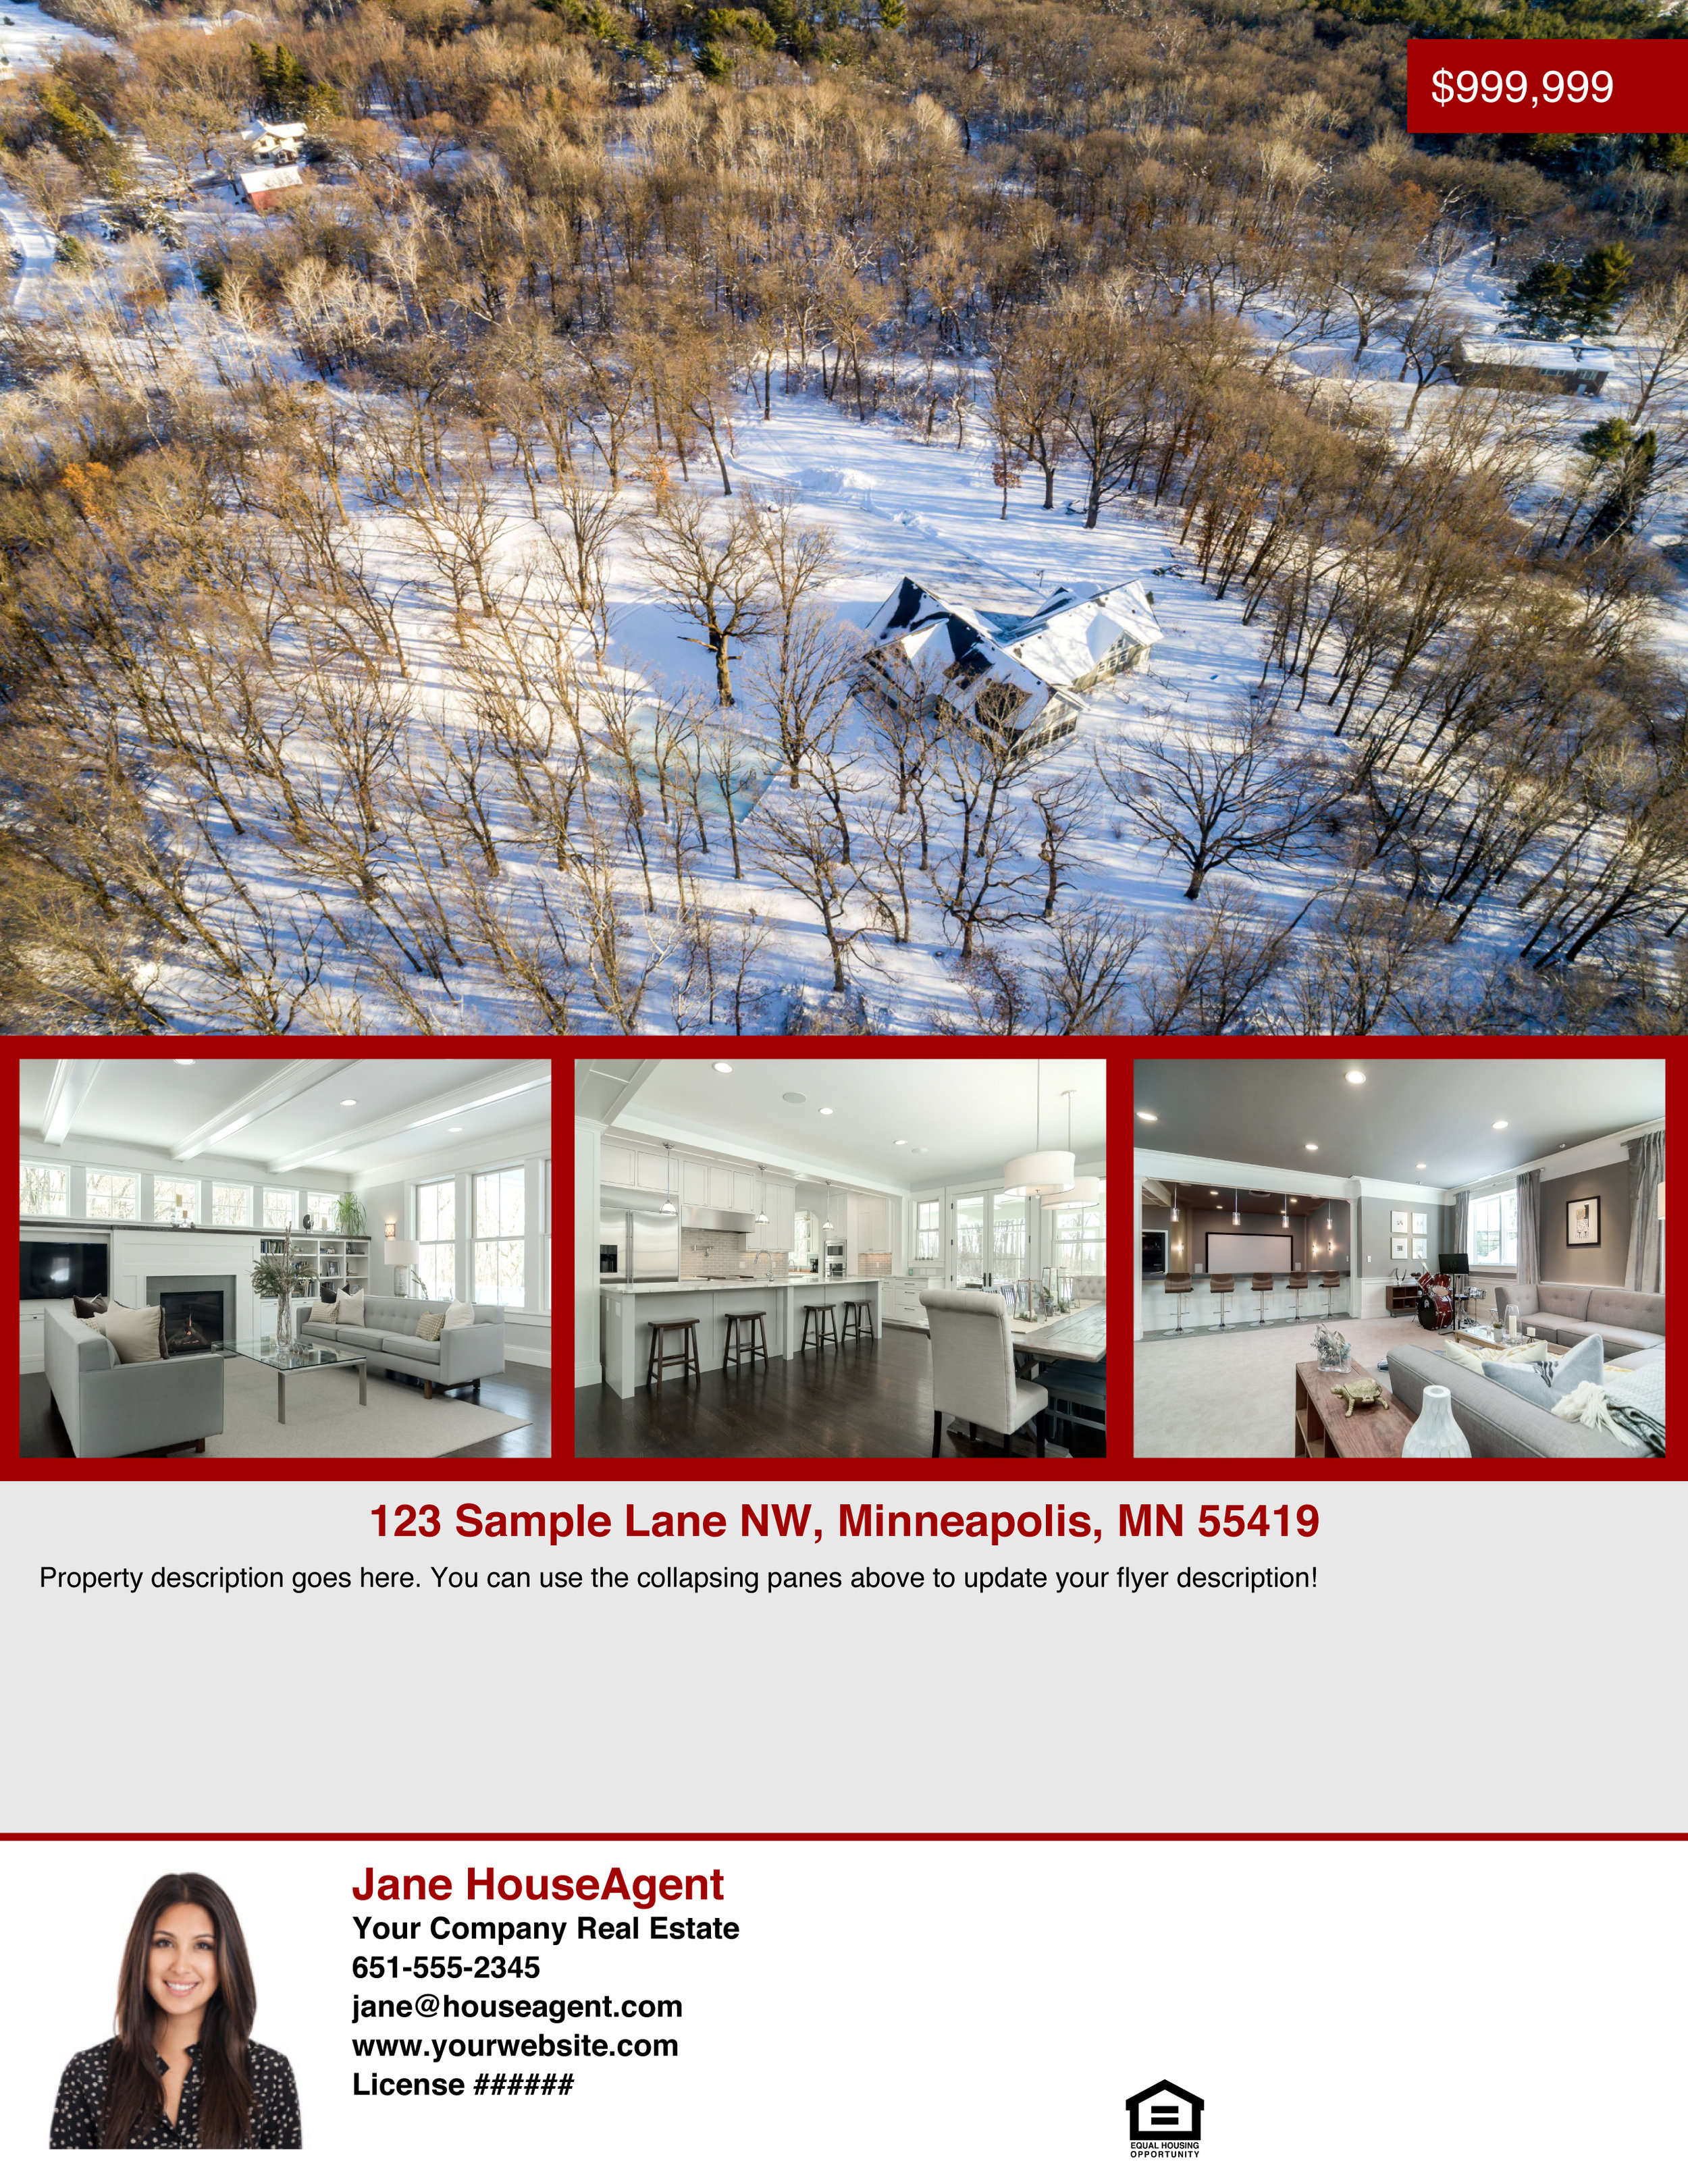 Property Flyer - Here is an example of our flyer builder - you are able to fully customize the images, colors, logos, and description for all of your branding needs!